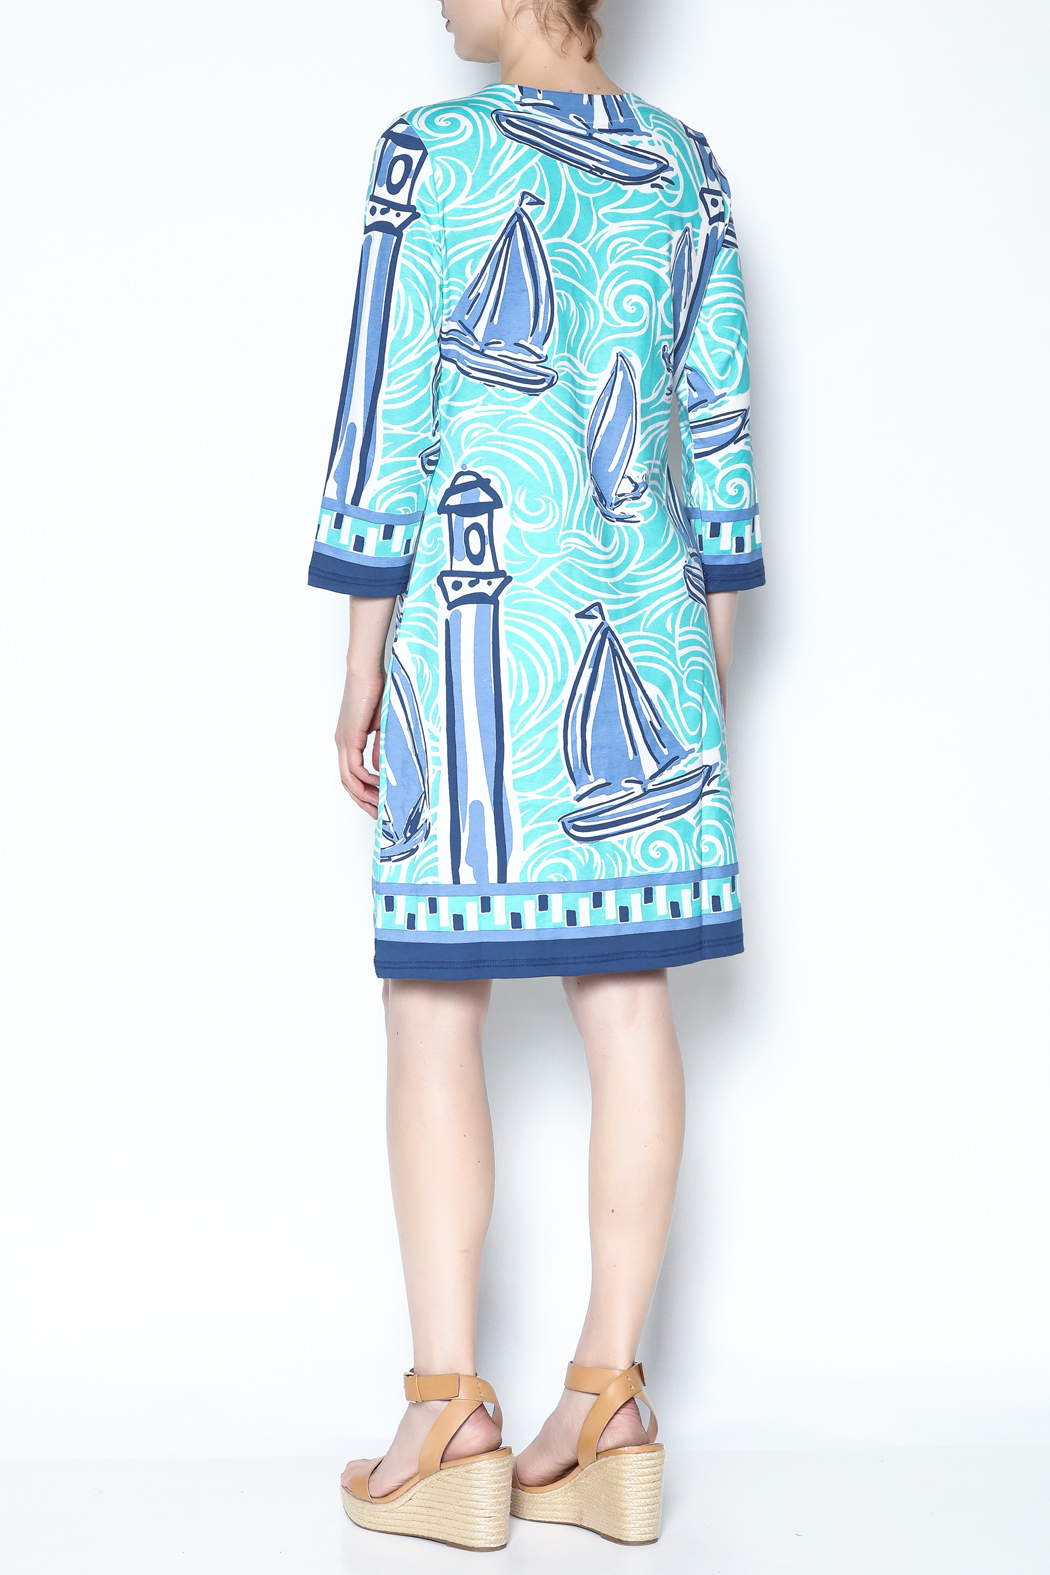 Barbara Gerwit Blue Boat Tunic Dress - Back Cropped Image